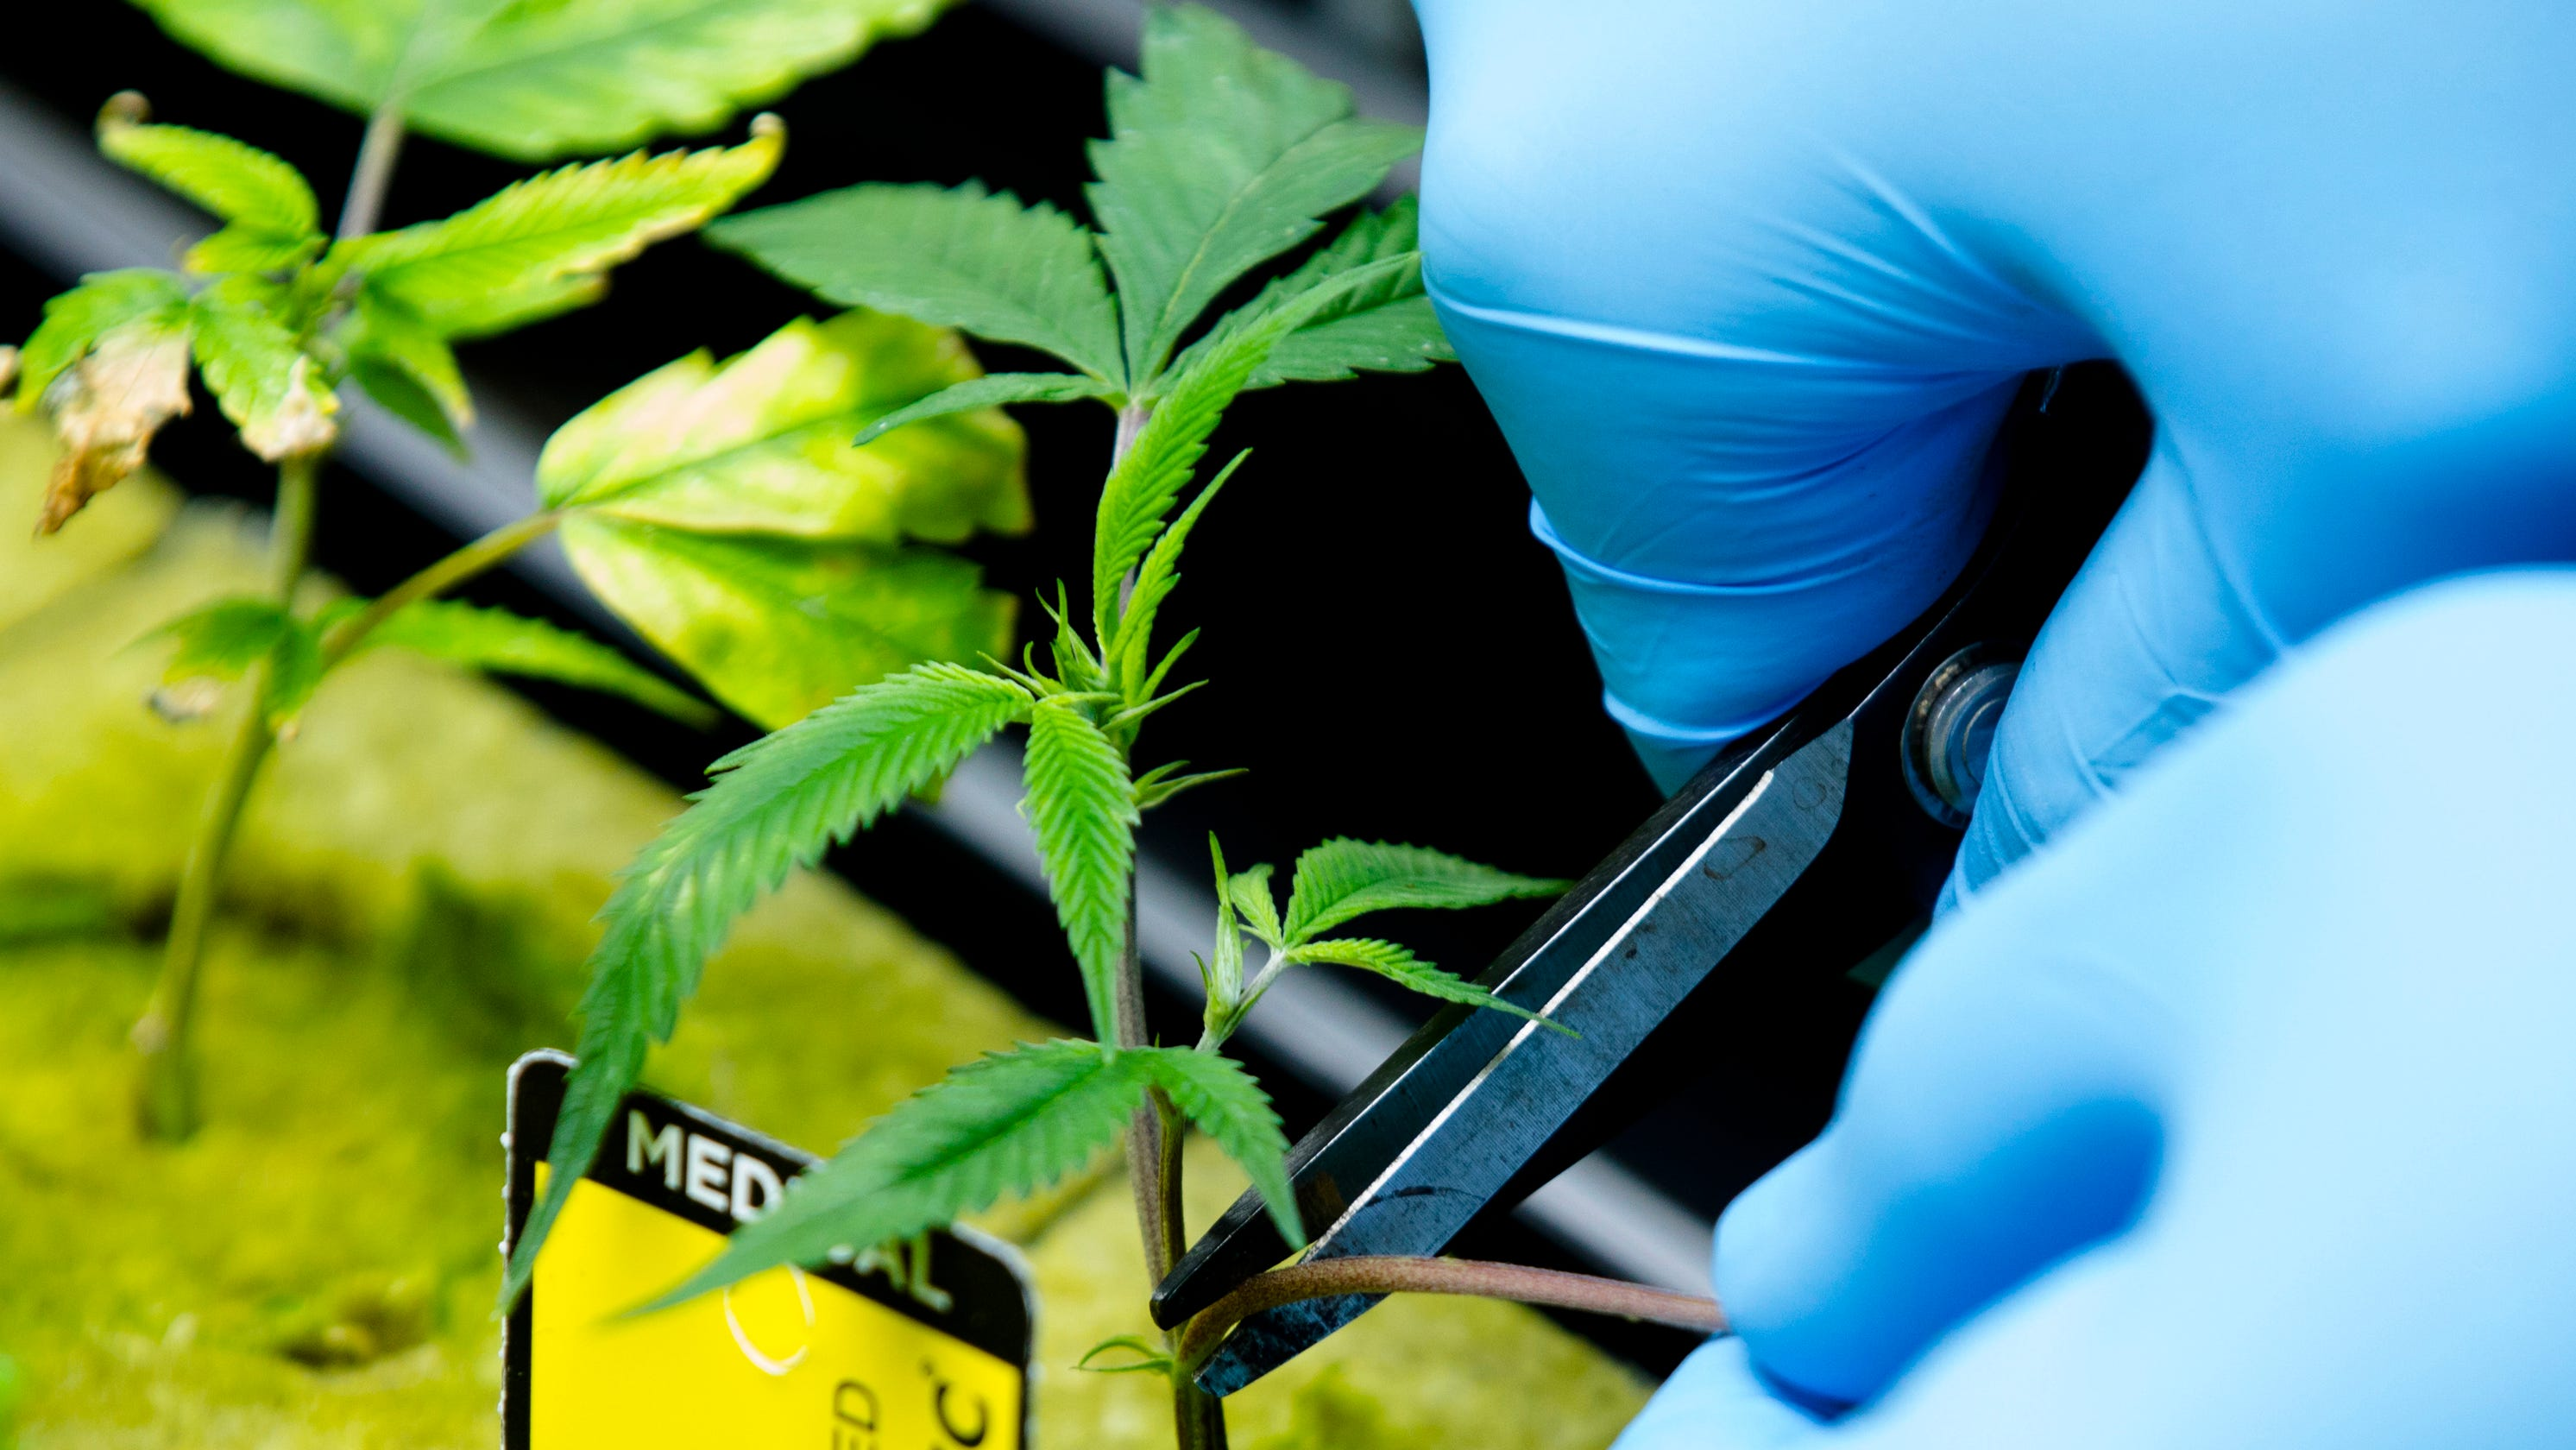 Medical Marijuana: Oils Pulled From Ohio Shelves Over Label